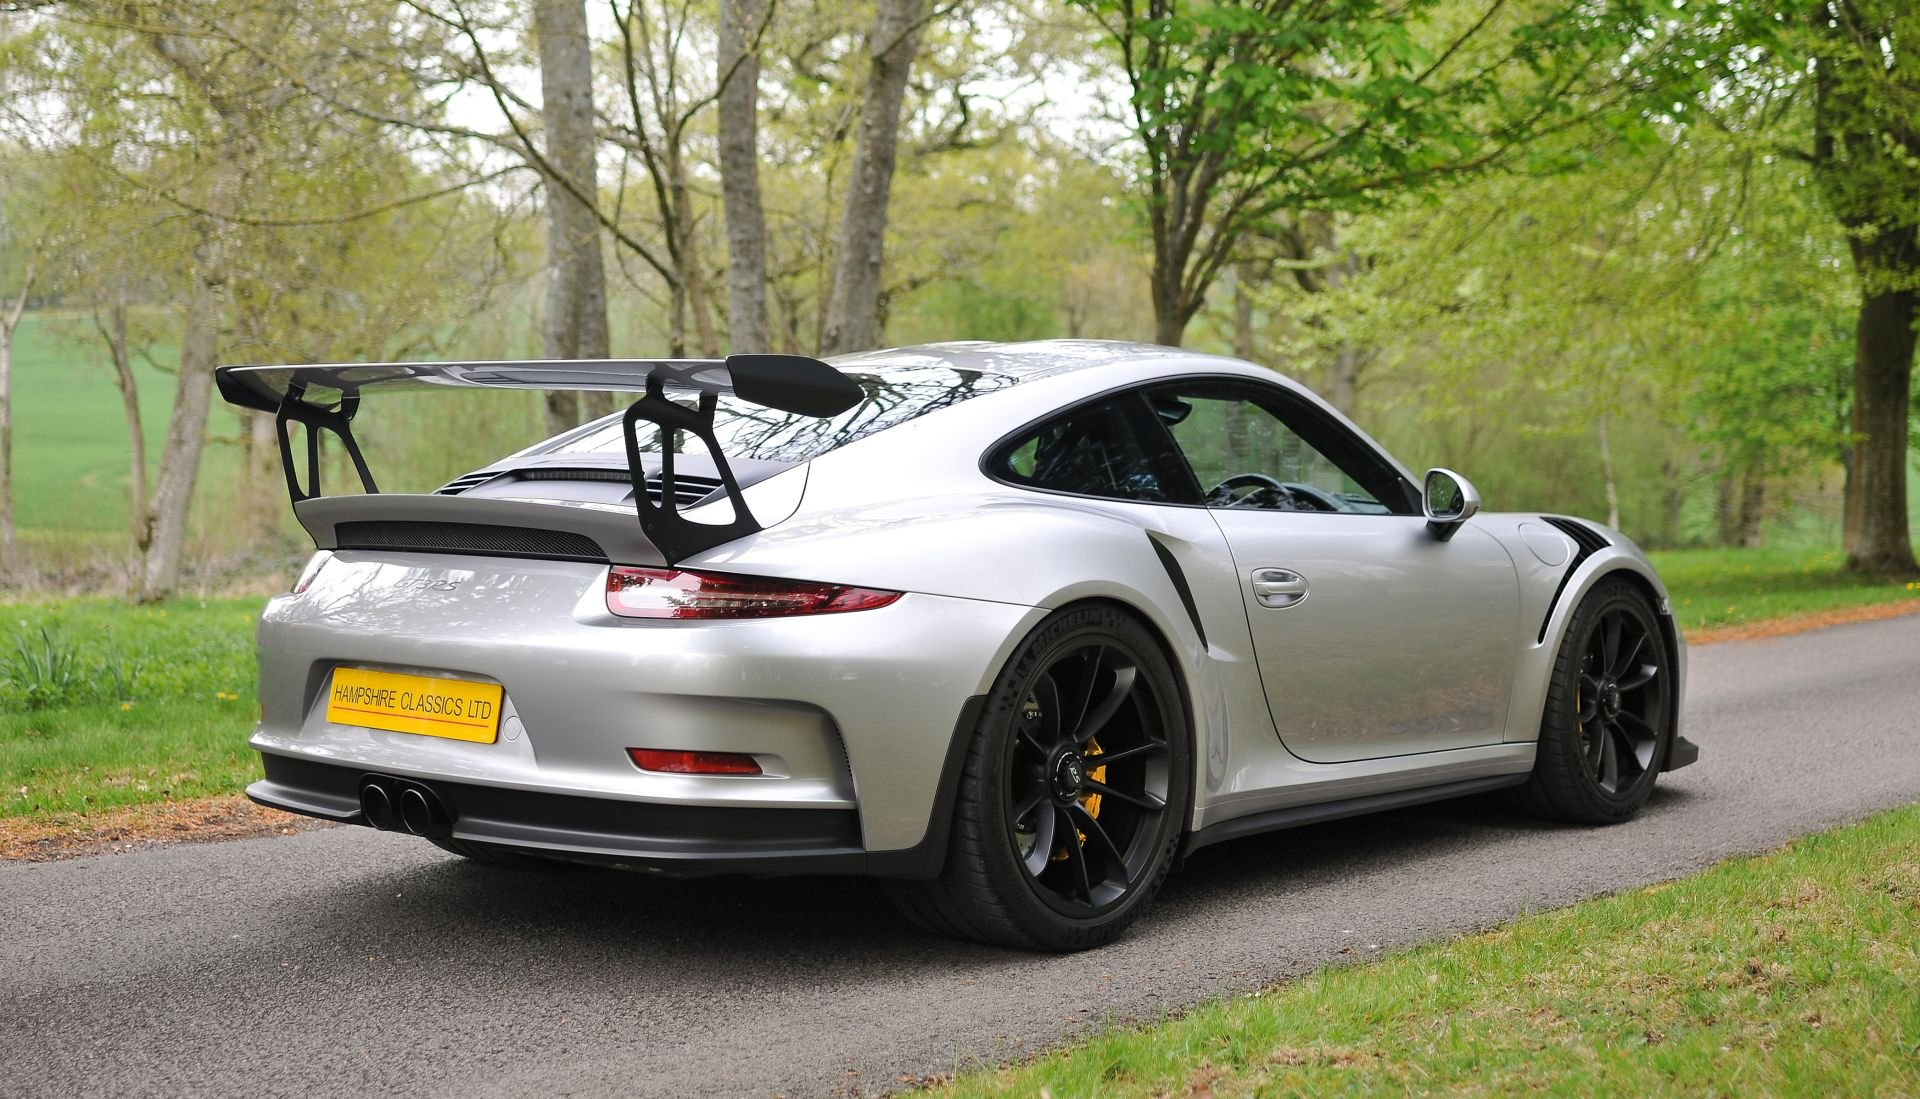 2016 Porsche 991 GT3 RS - Only 2268 miles SOLD (picture 3 of 6)